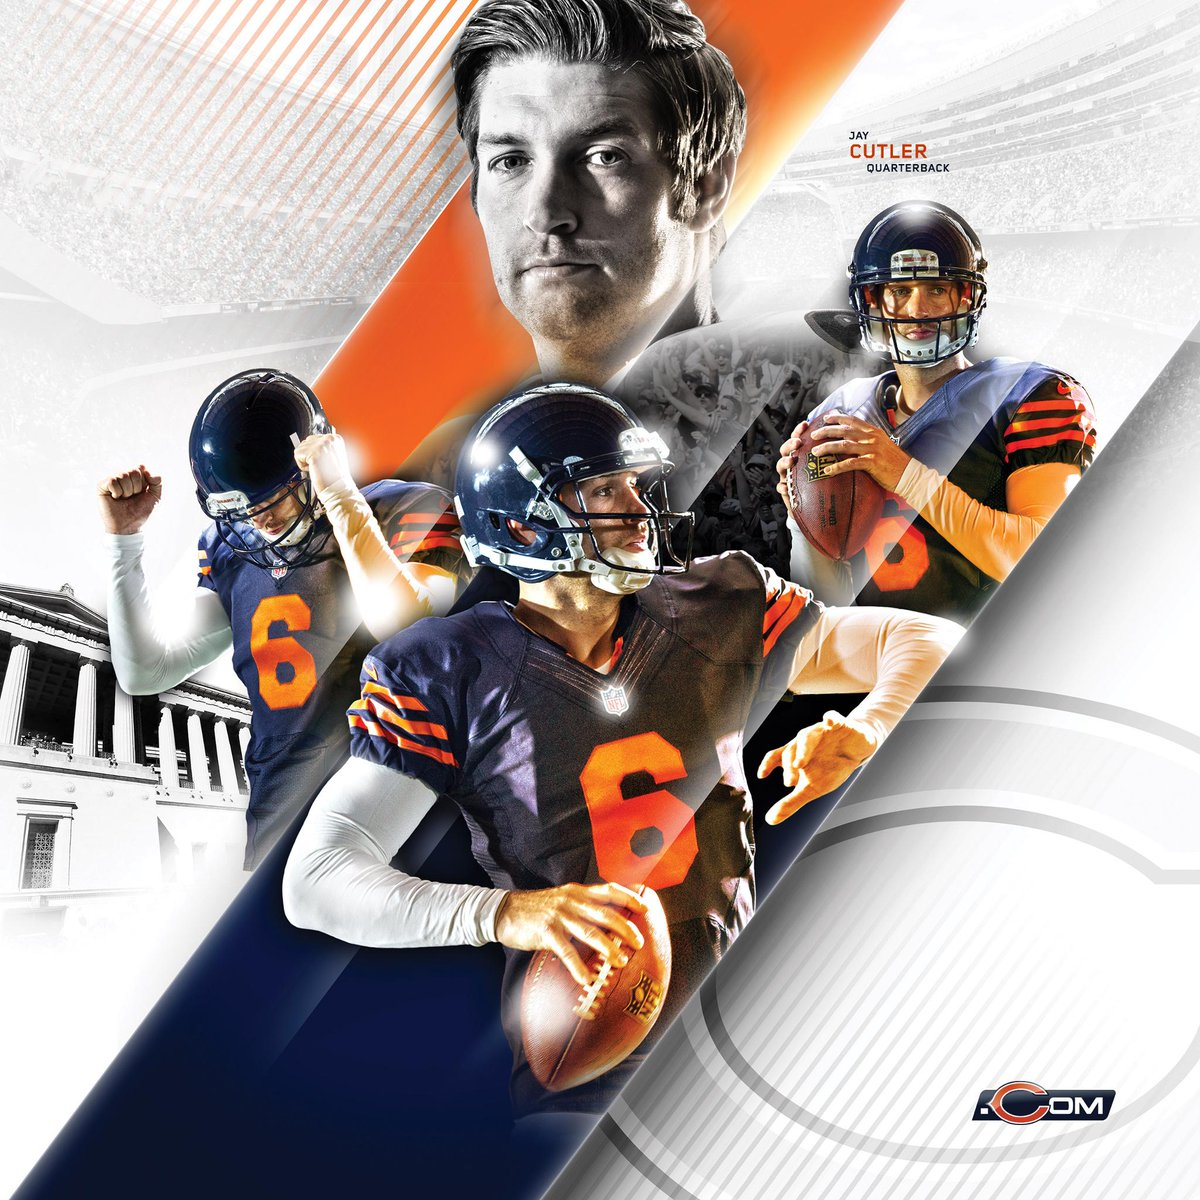 Chicago Bears On Twitter Dont Forget About Wallpaper Wednesday This Week Weve Got Mr Jay Cutler For You Tco Y7qPPyytj7